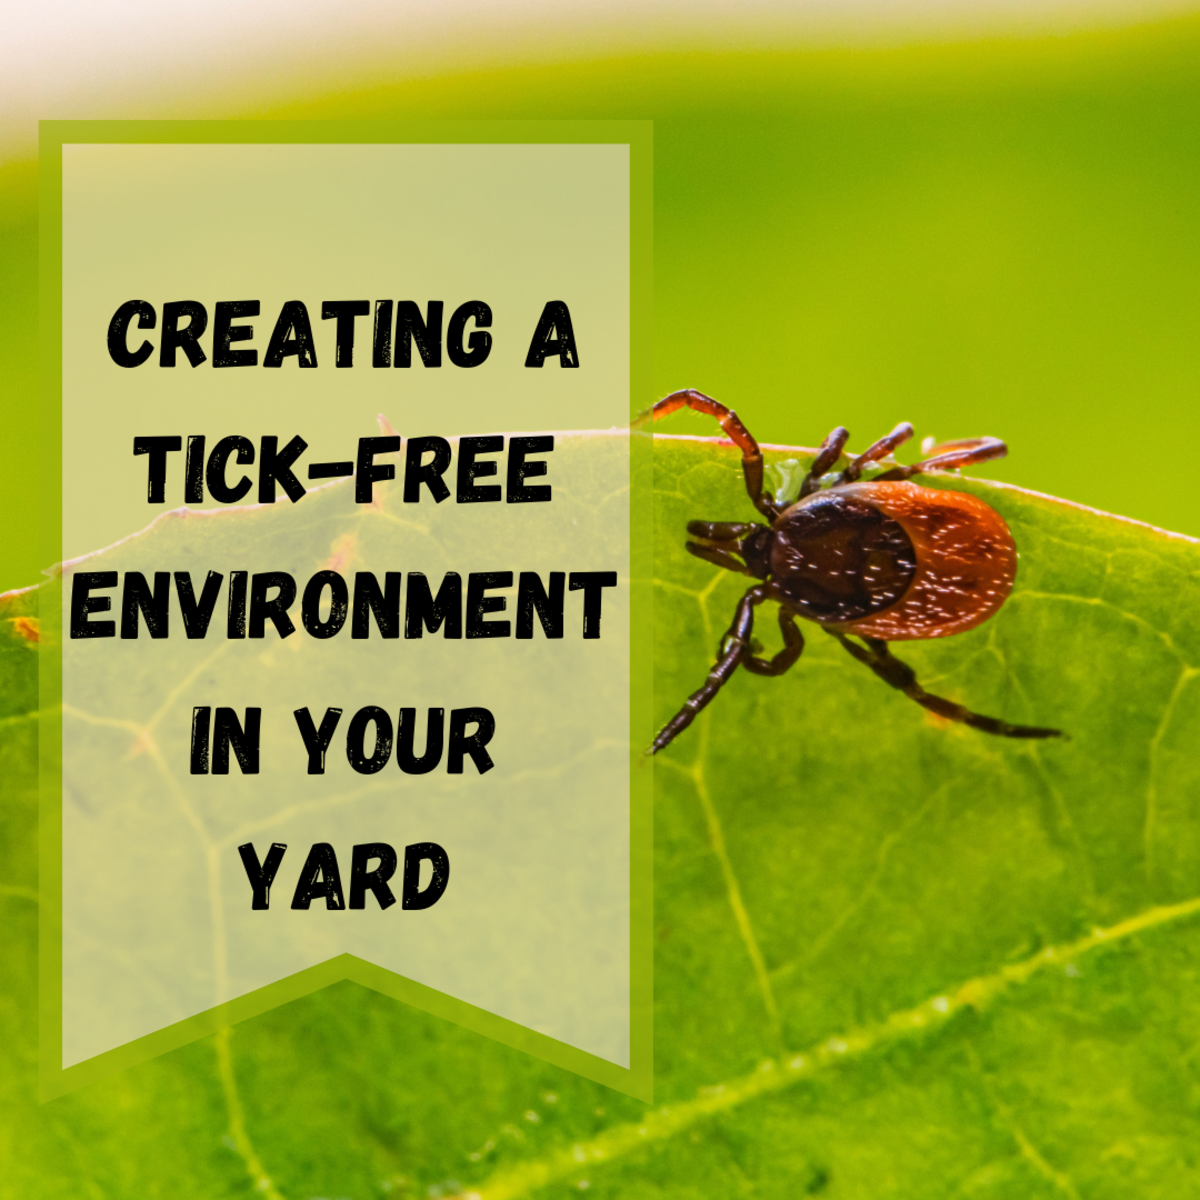 Tips For Designing a Tick-Free Environment For Your Yard